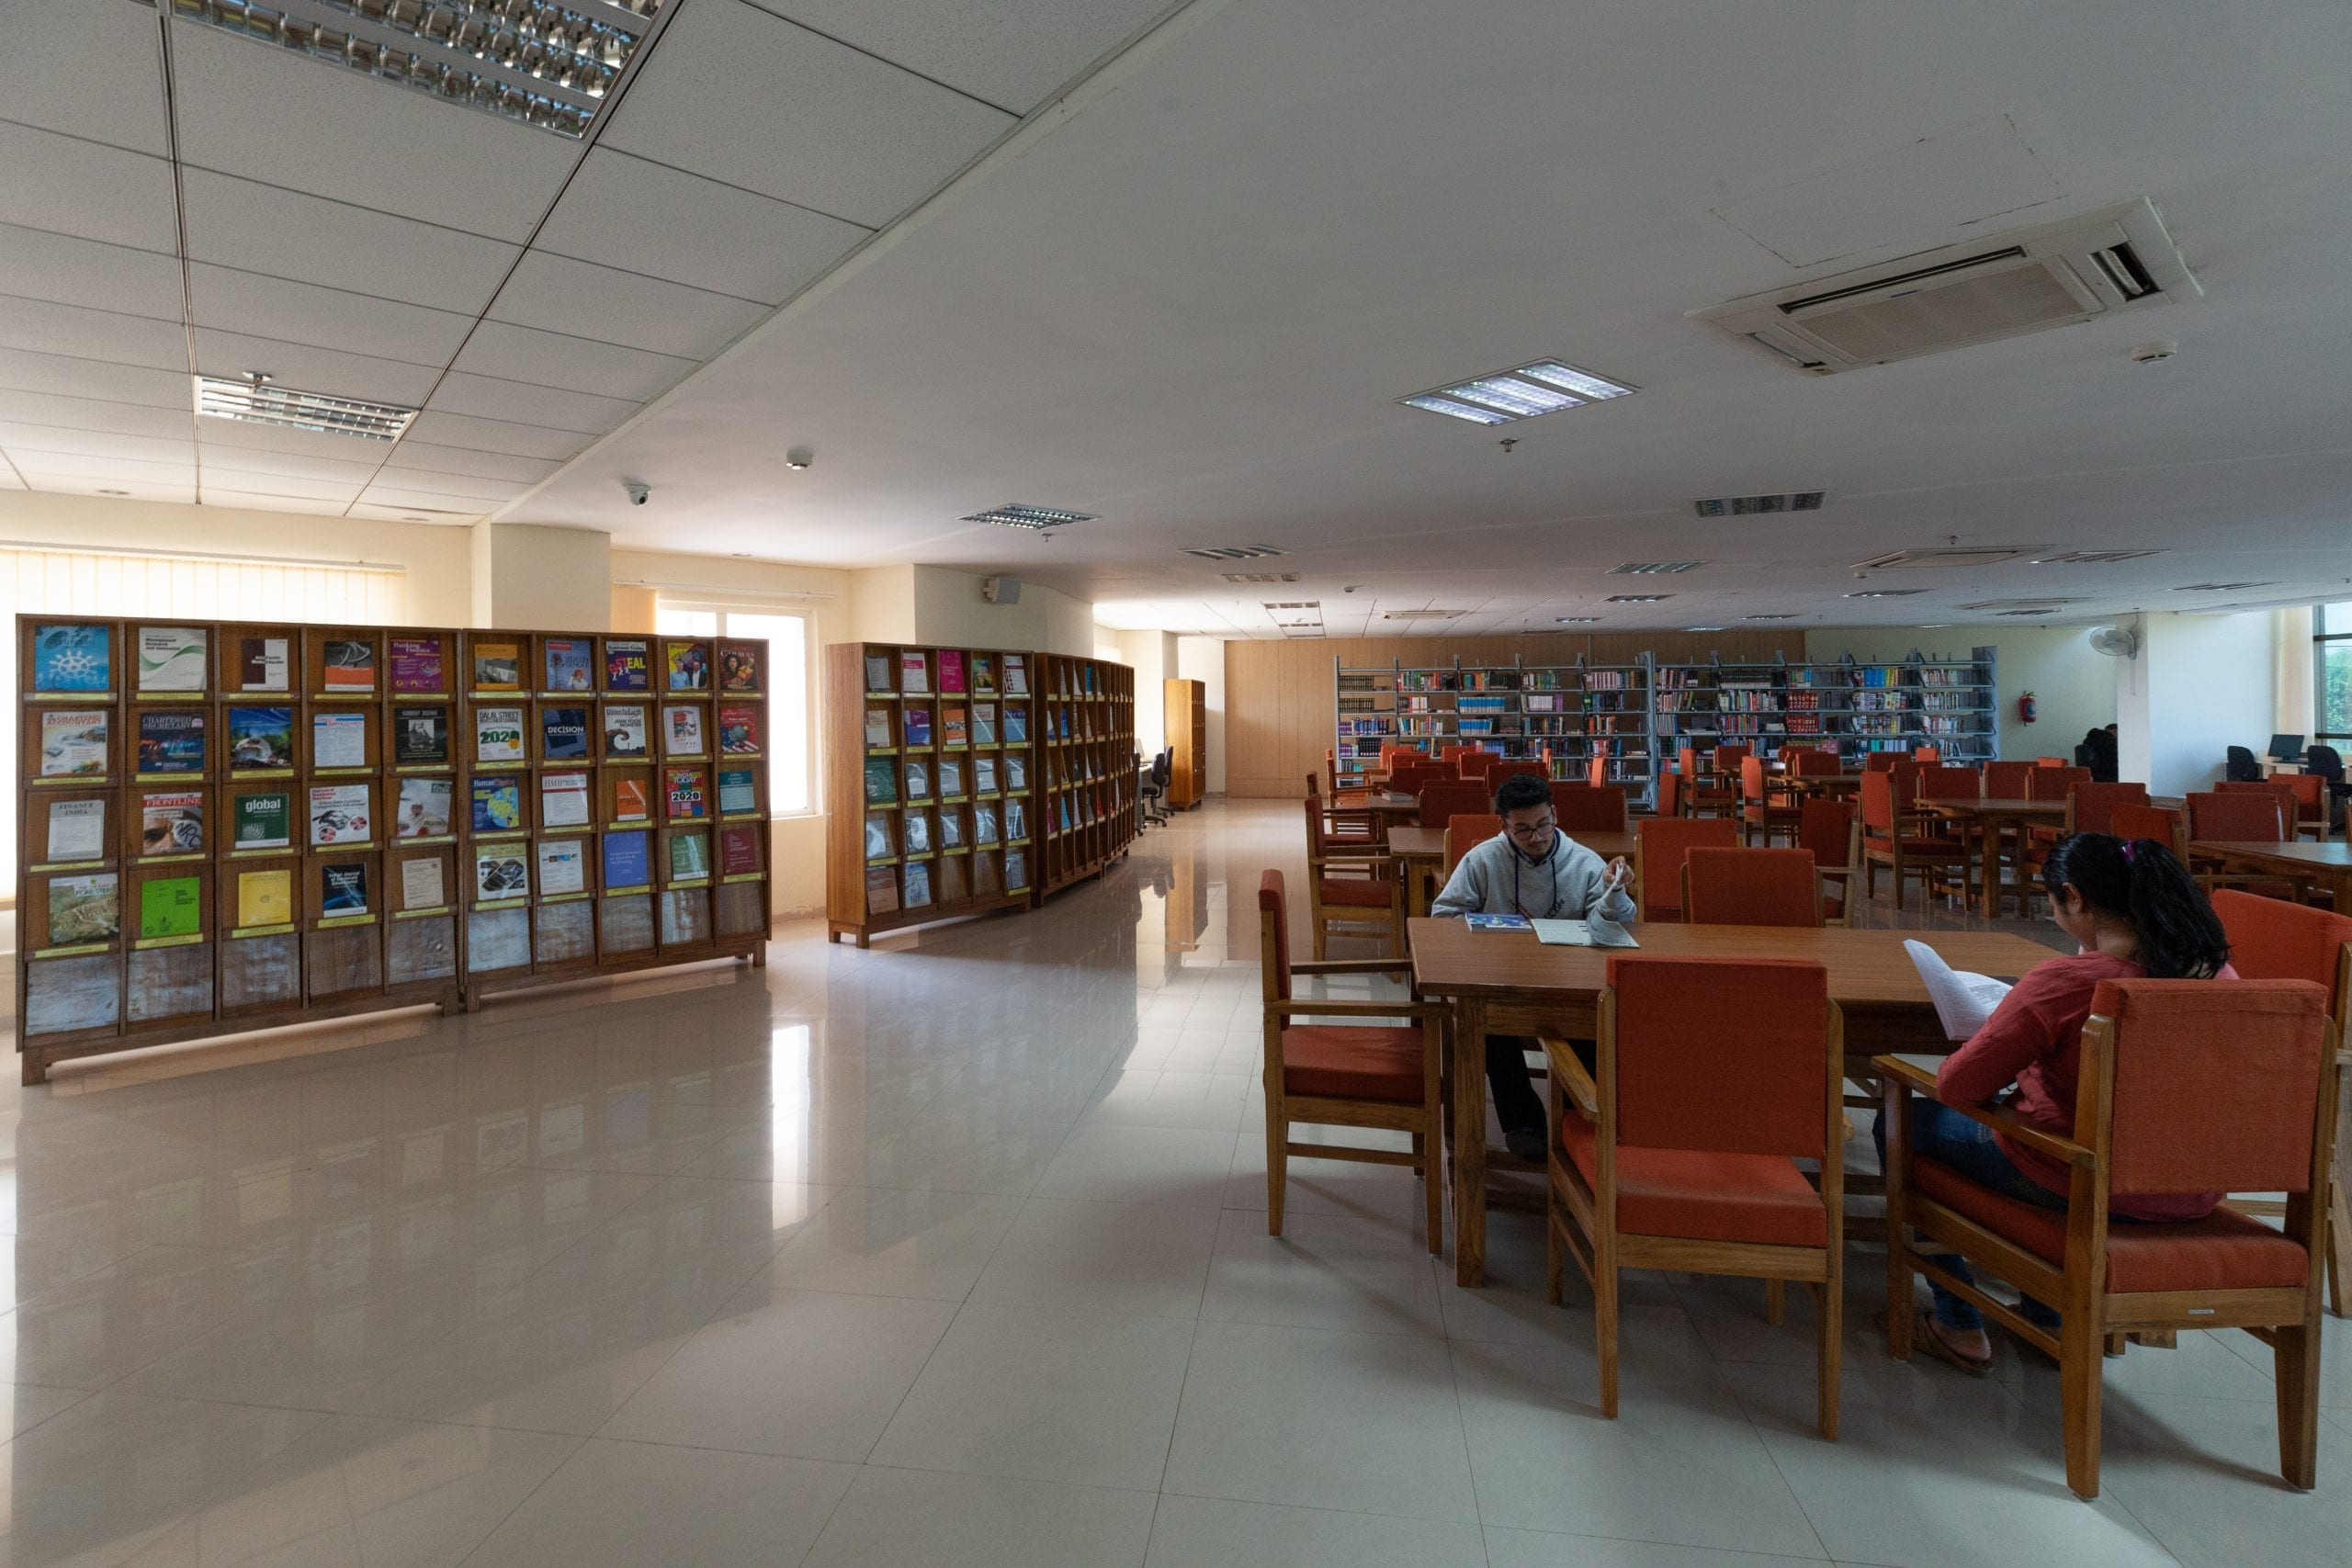 xub libraries facilities